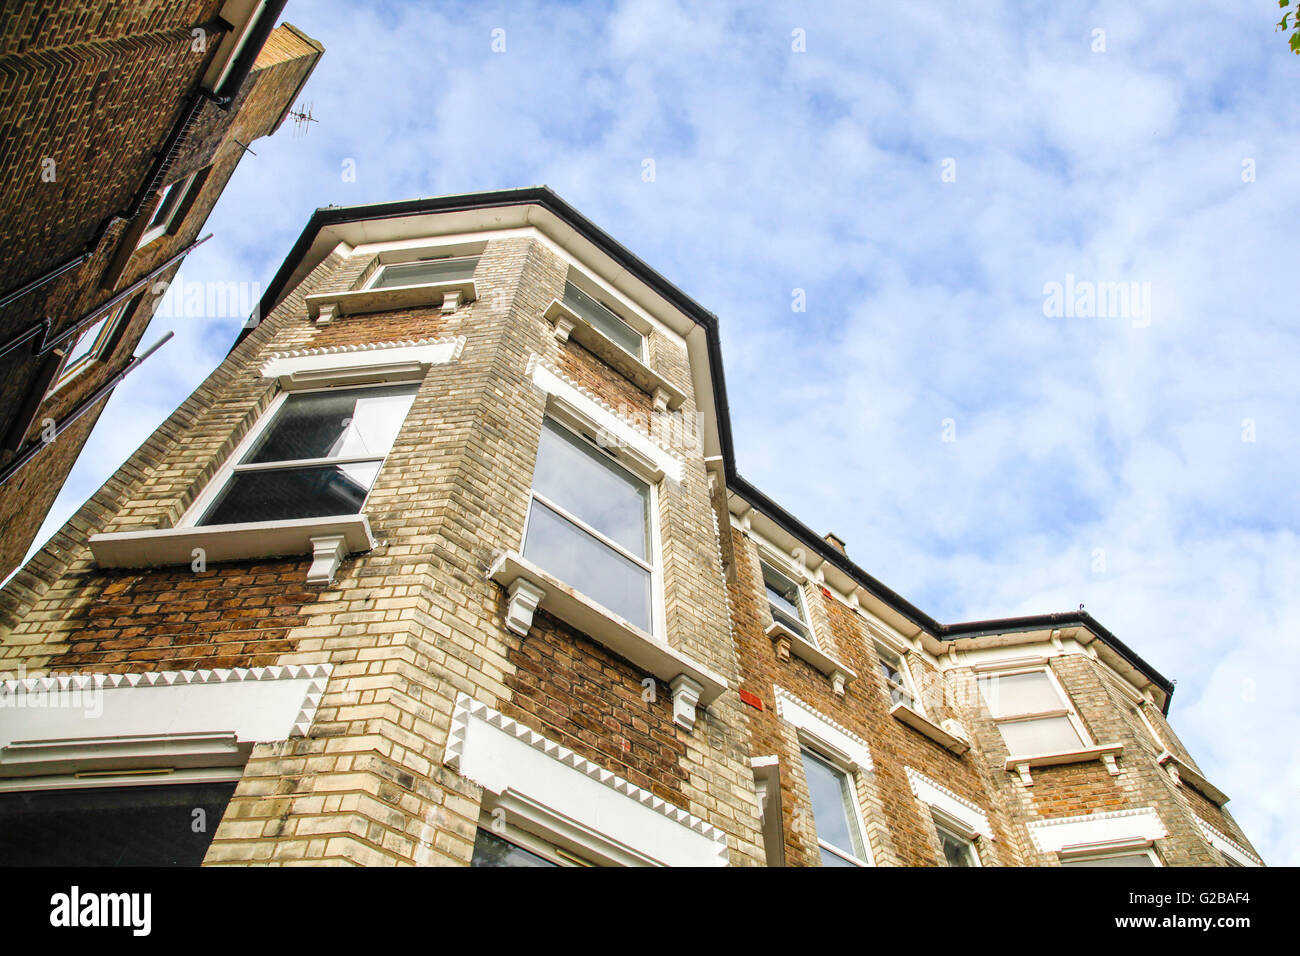 Fordwych Road, West Hampstead. Angled view looking up an exterior wall of an apartment building. Brick walls. - Stock Image